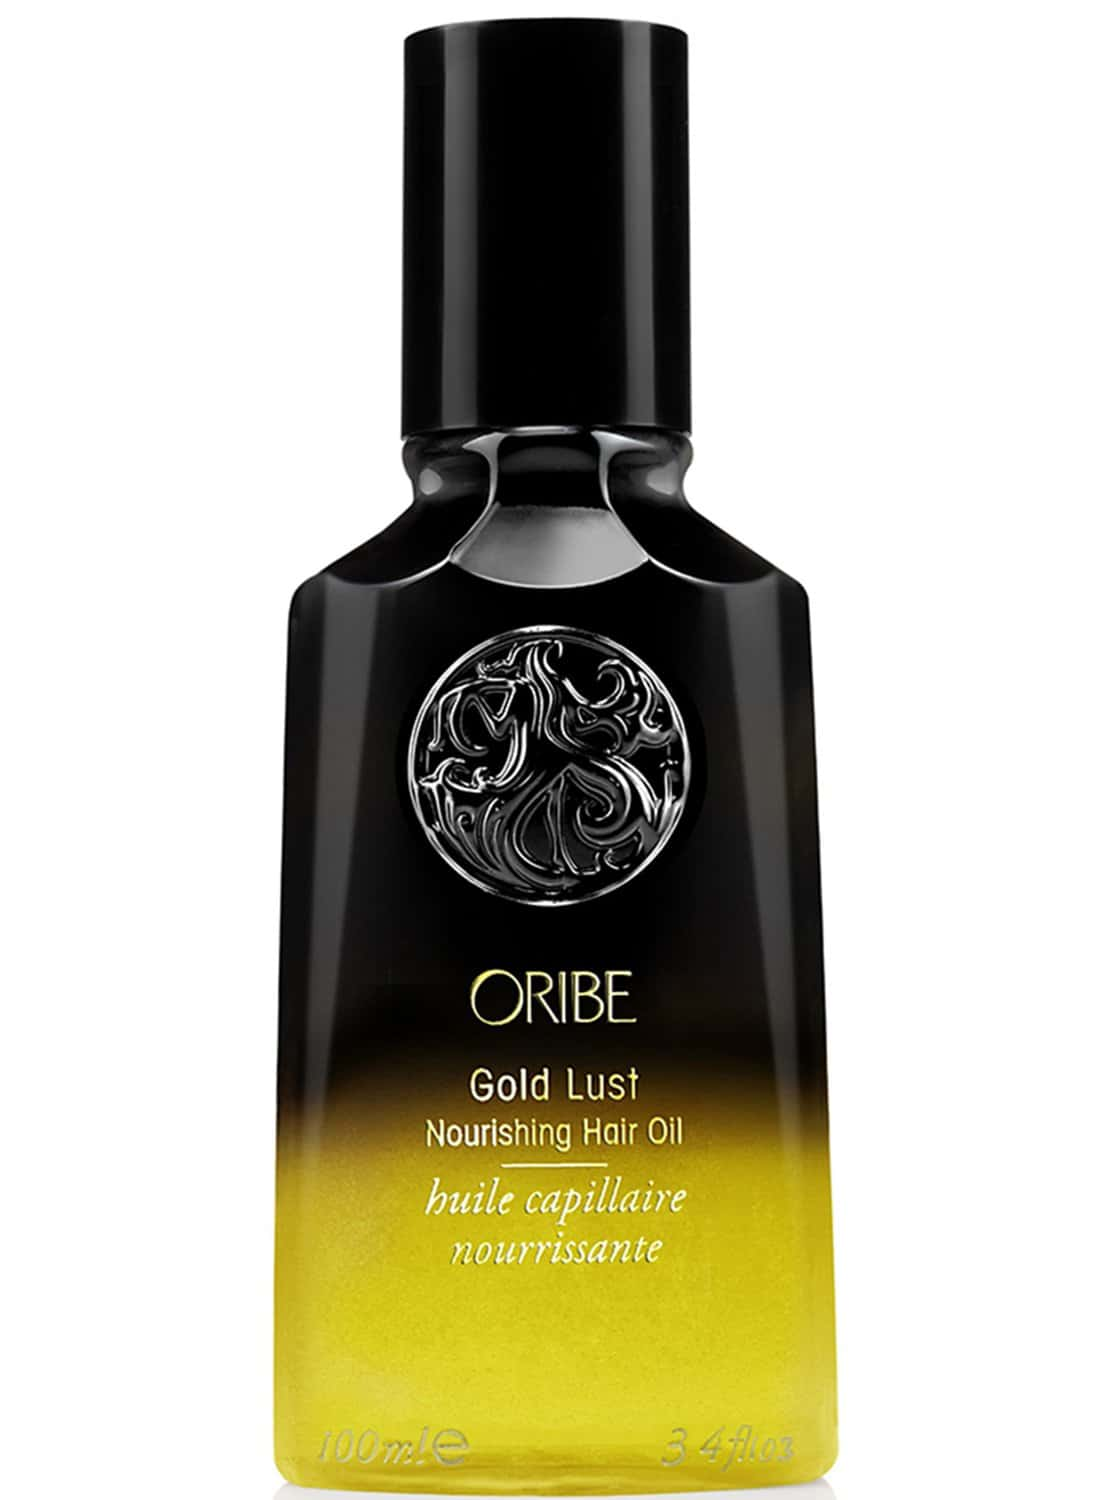 Gold Lust Nourishing Hair Oil 100ml | Oribe